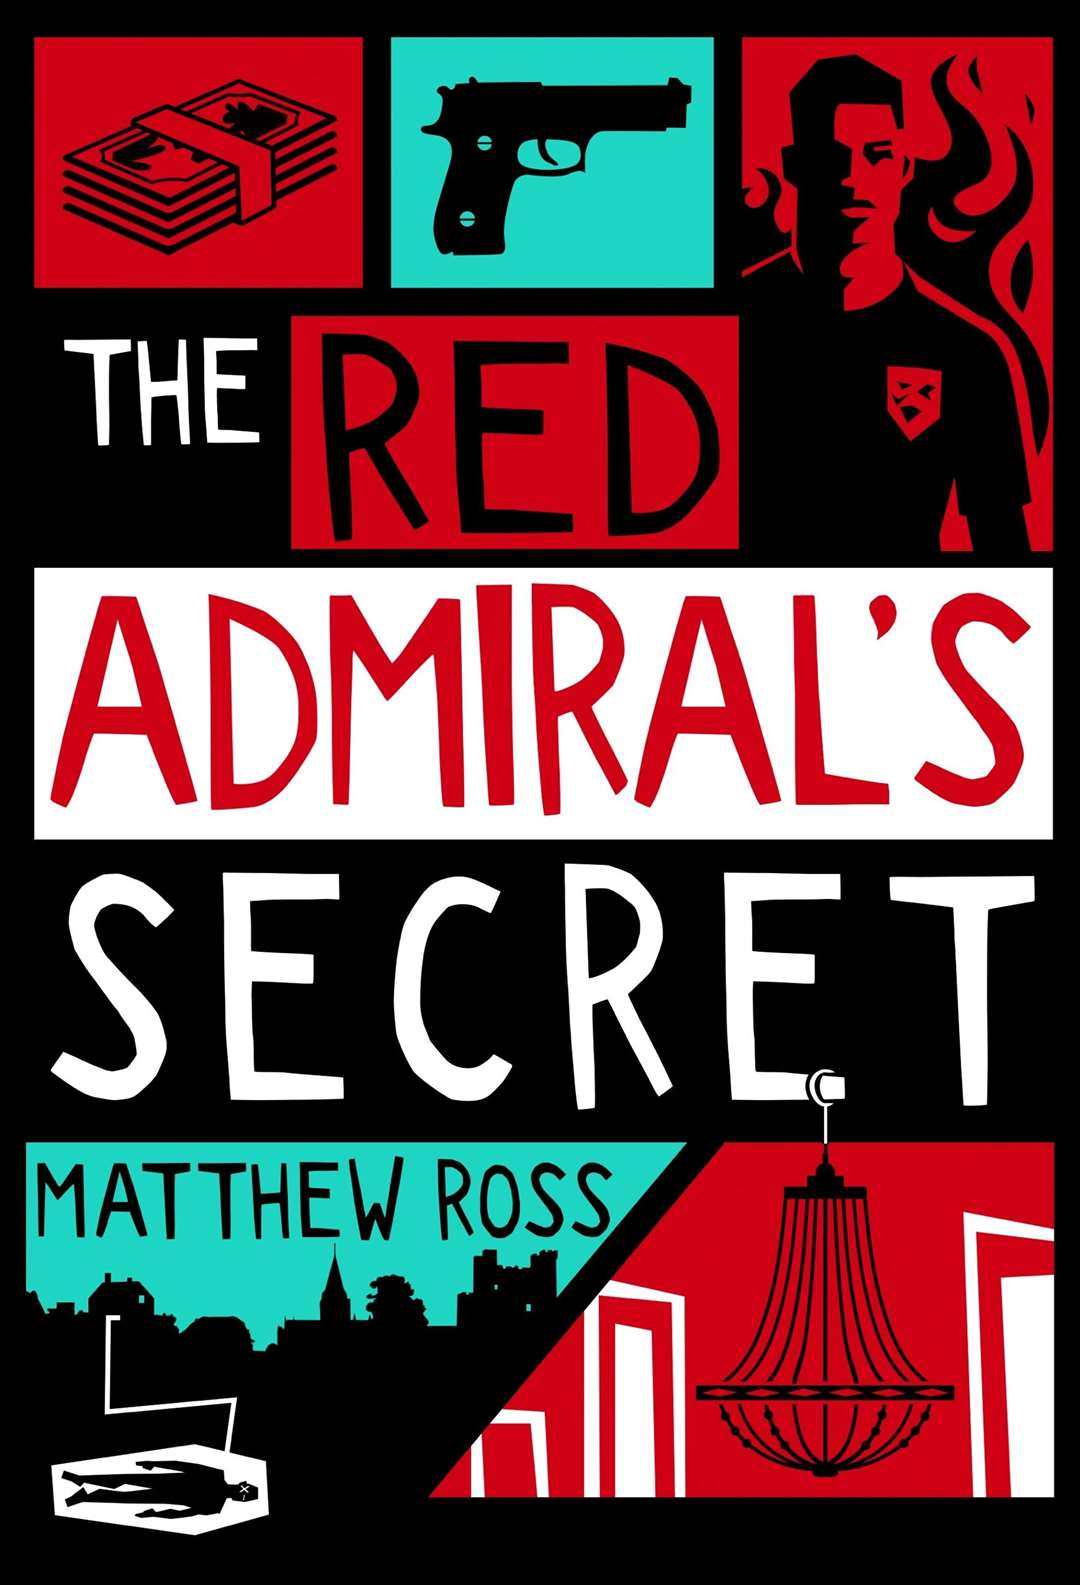 Matthew Ross from Medway's second book, The Red Admiral's Secret Picture: Red Dog Press